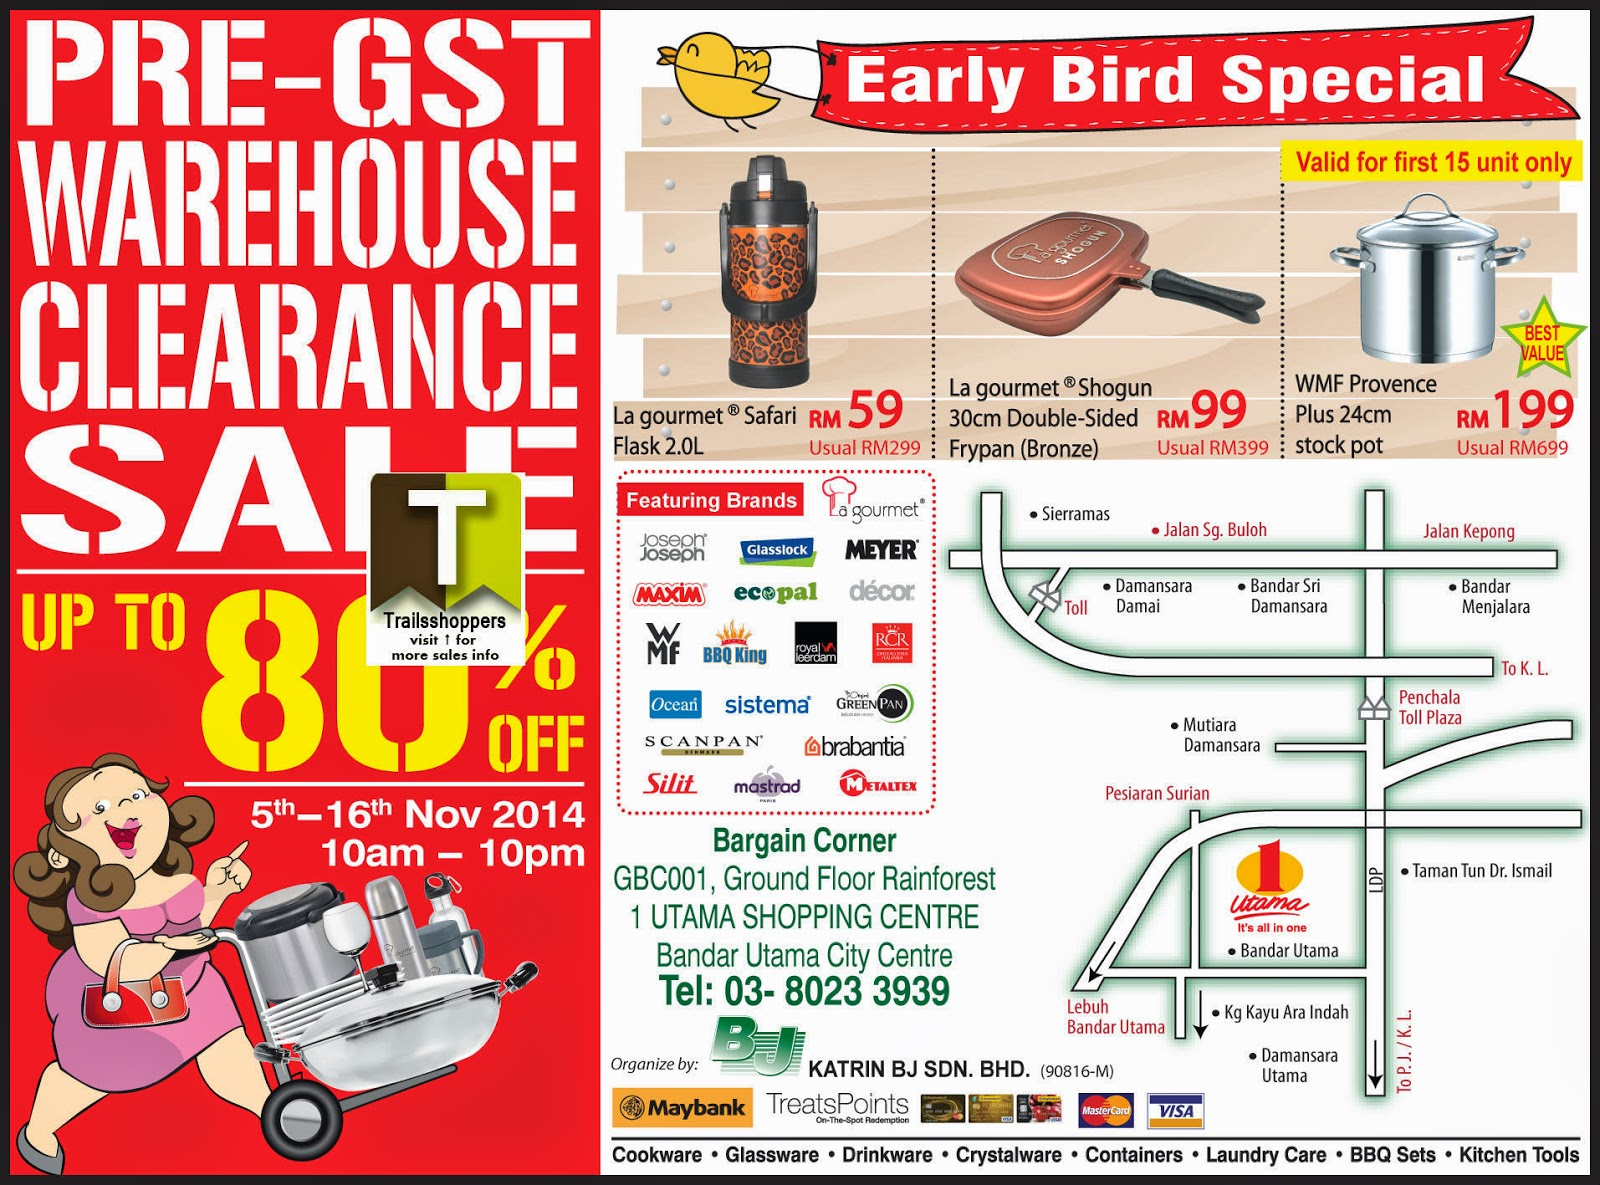 Katrin BJ Malaysia Pre-GST Warehouse Sale discounts up to 80% on cookware & kitchenware